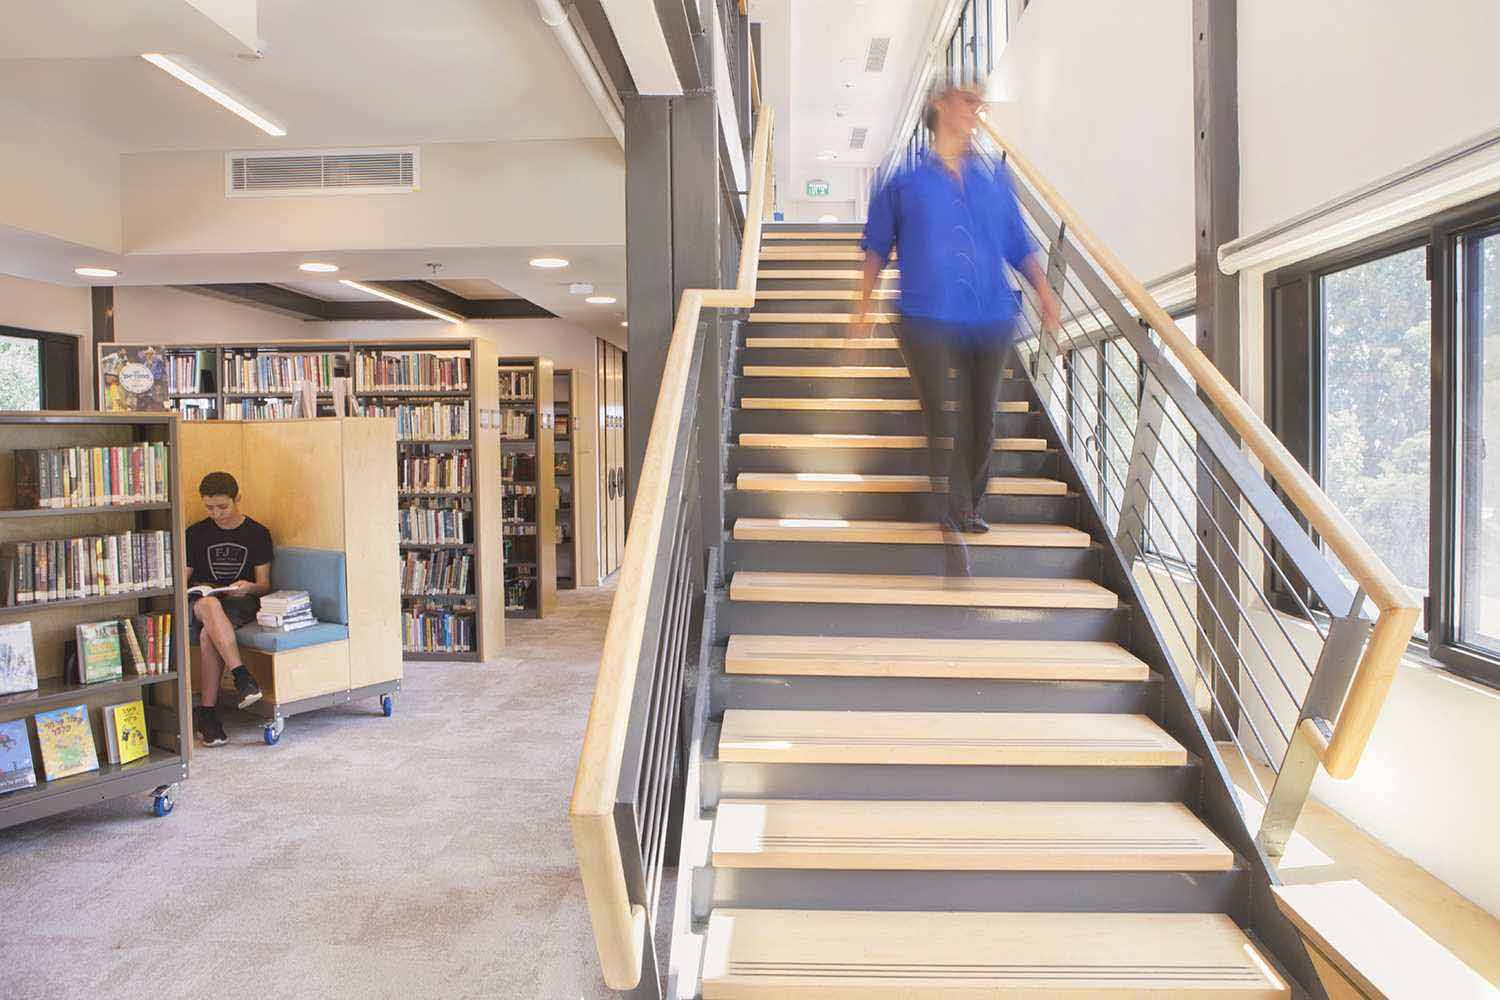 New library shaft and stairs Omri Talmor